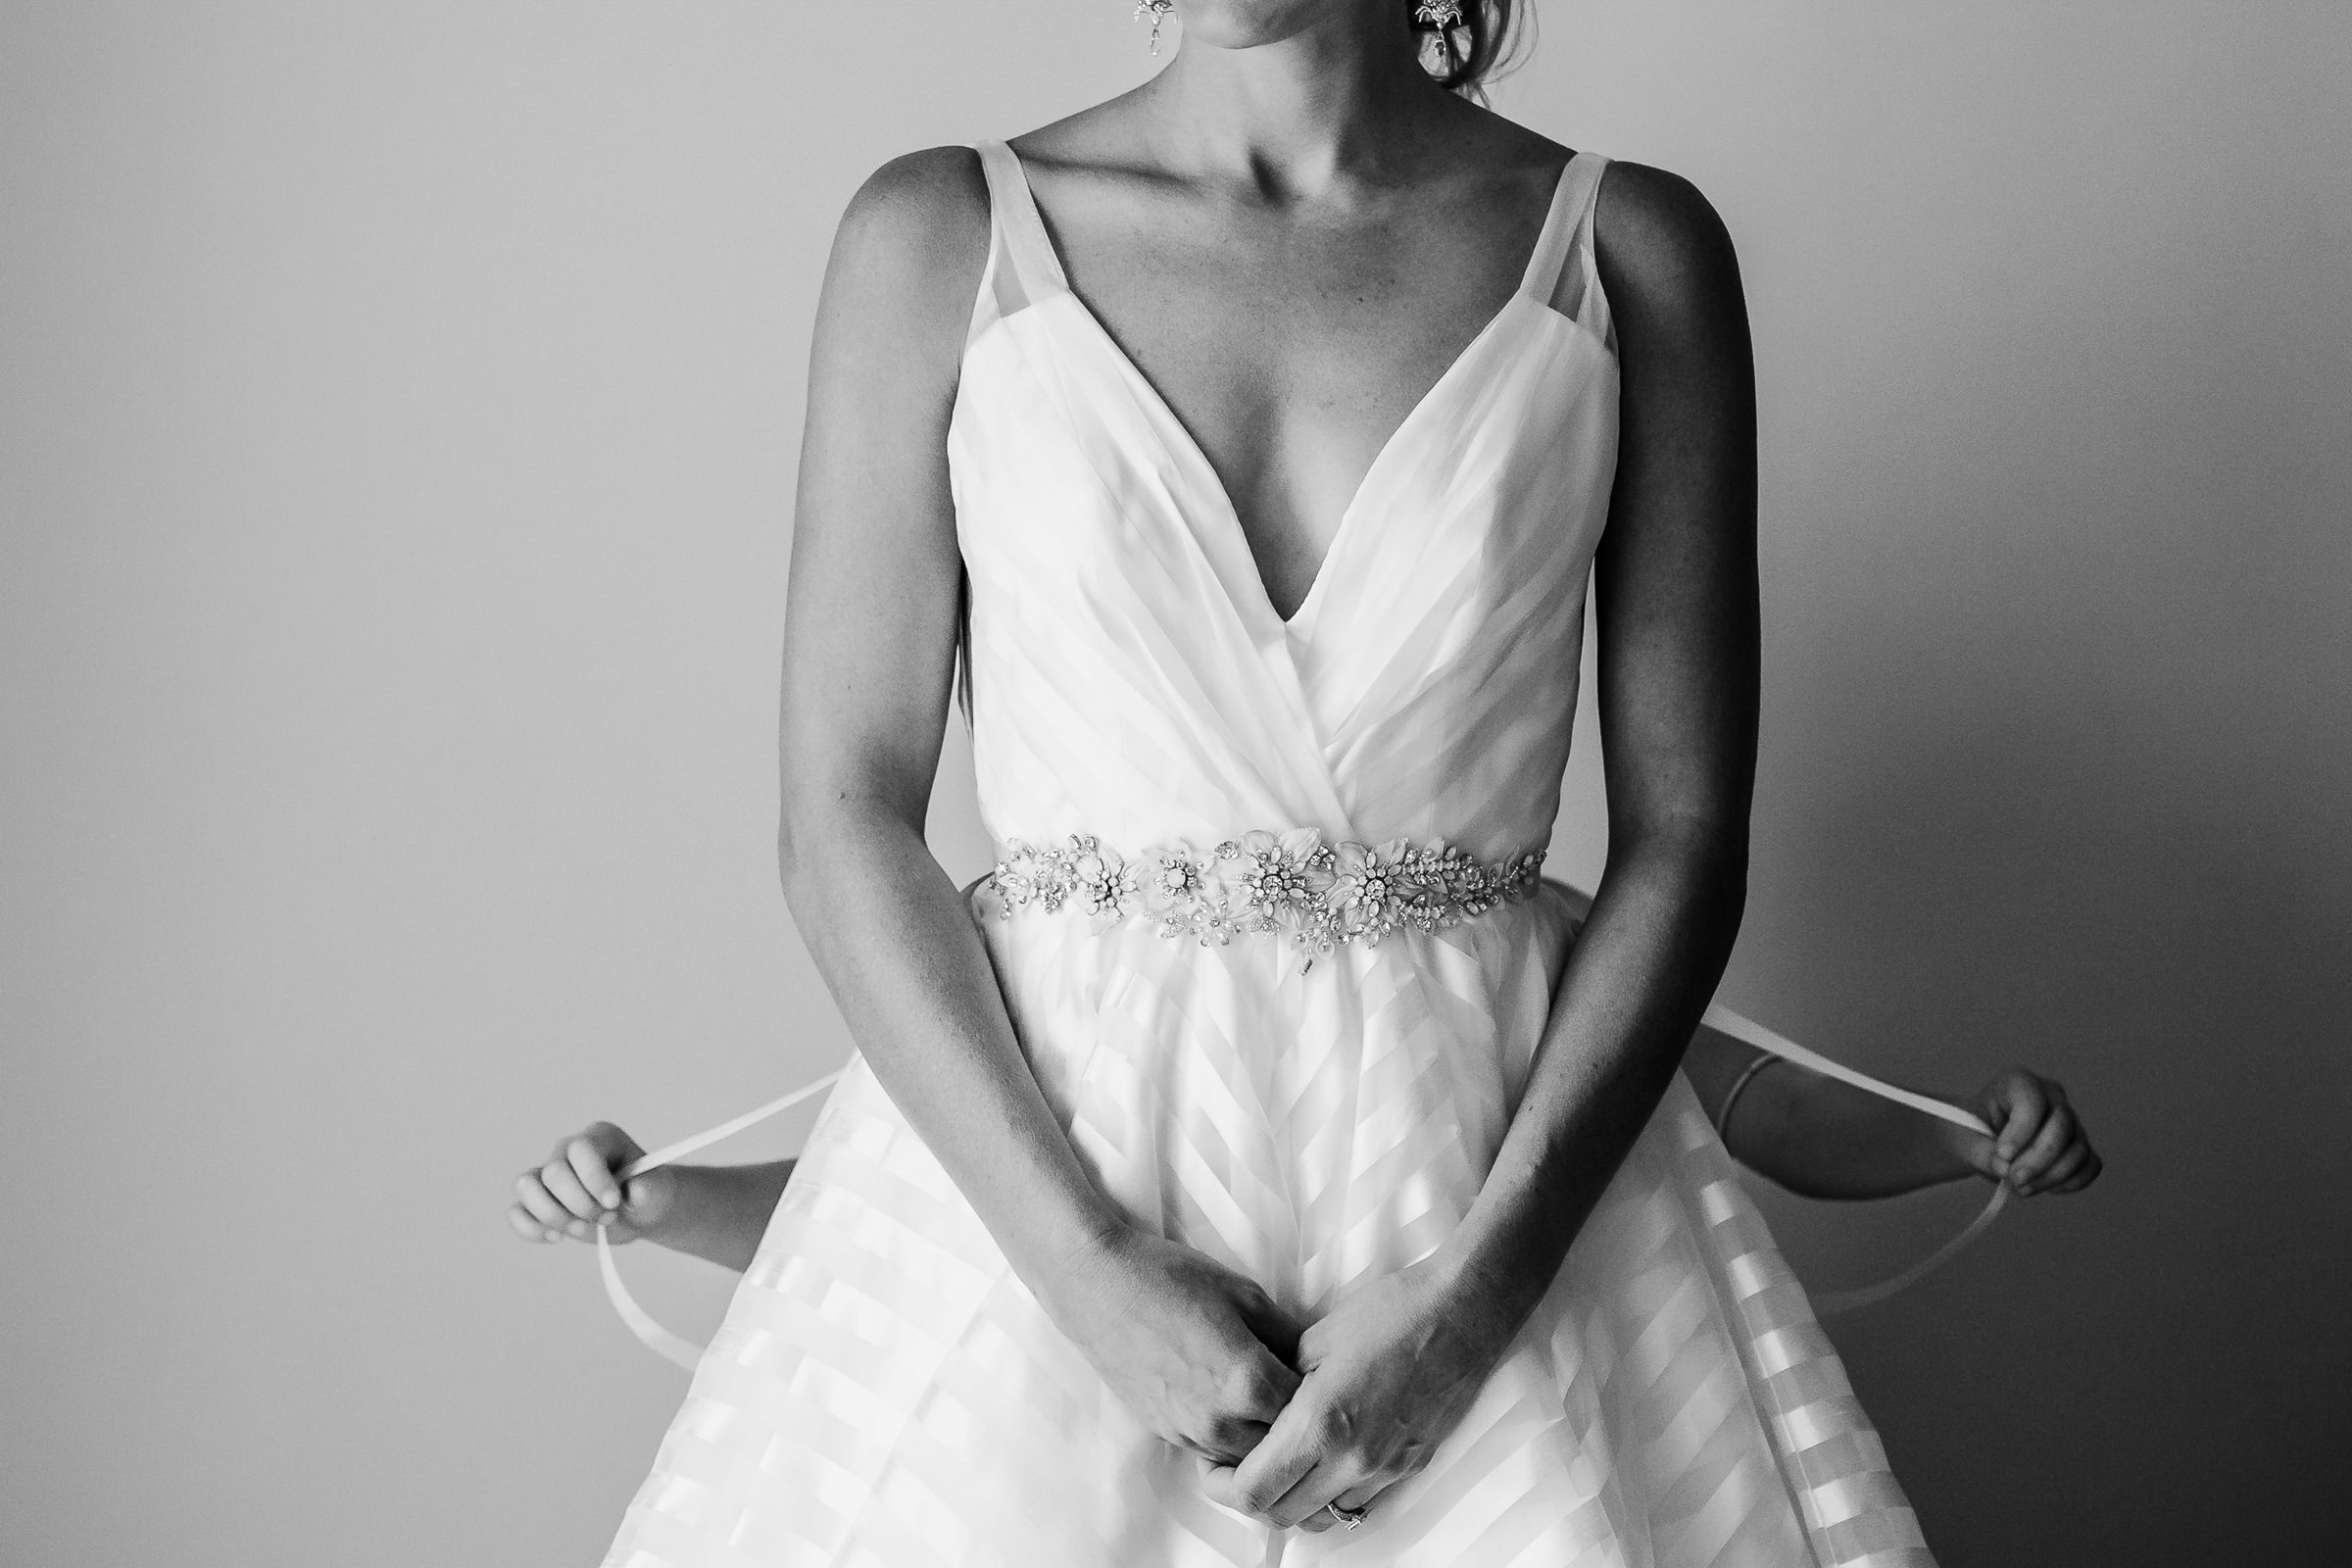 Bride in  having her dress laced up - photo by M. Hart - Los Angeles photographer